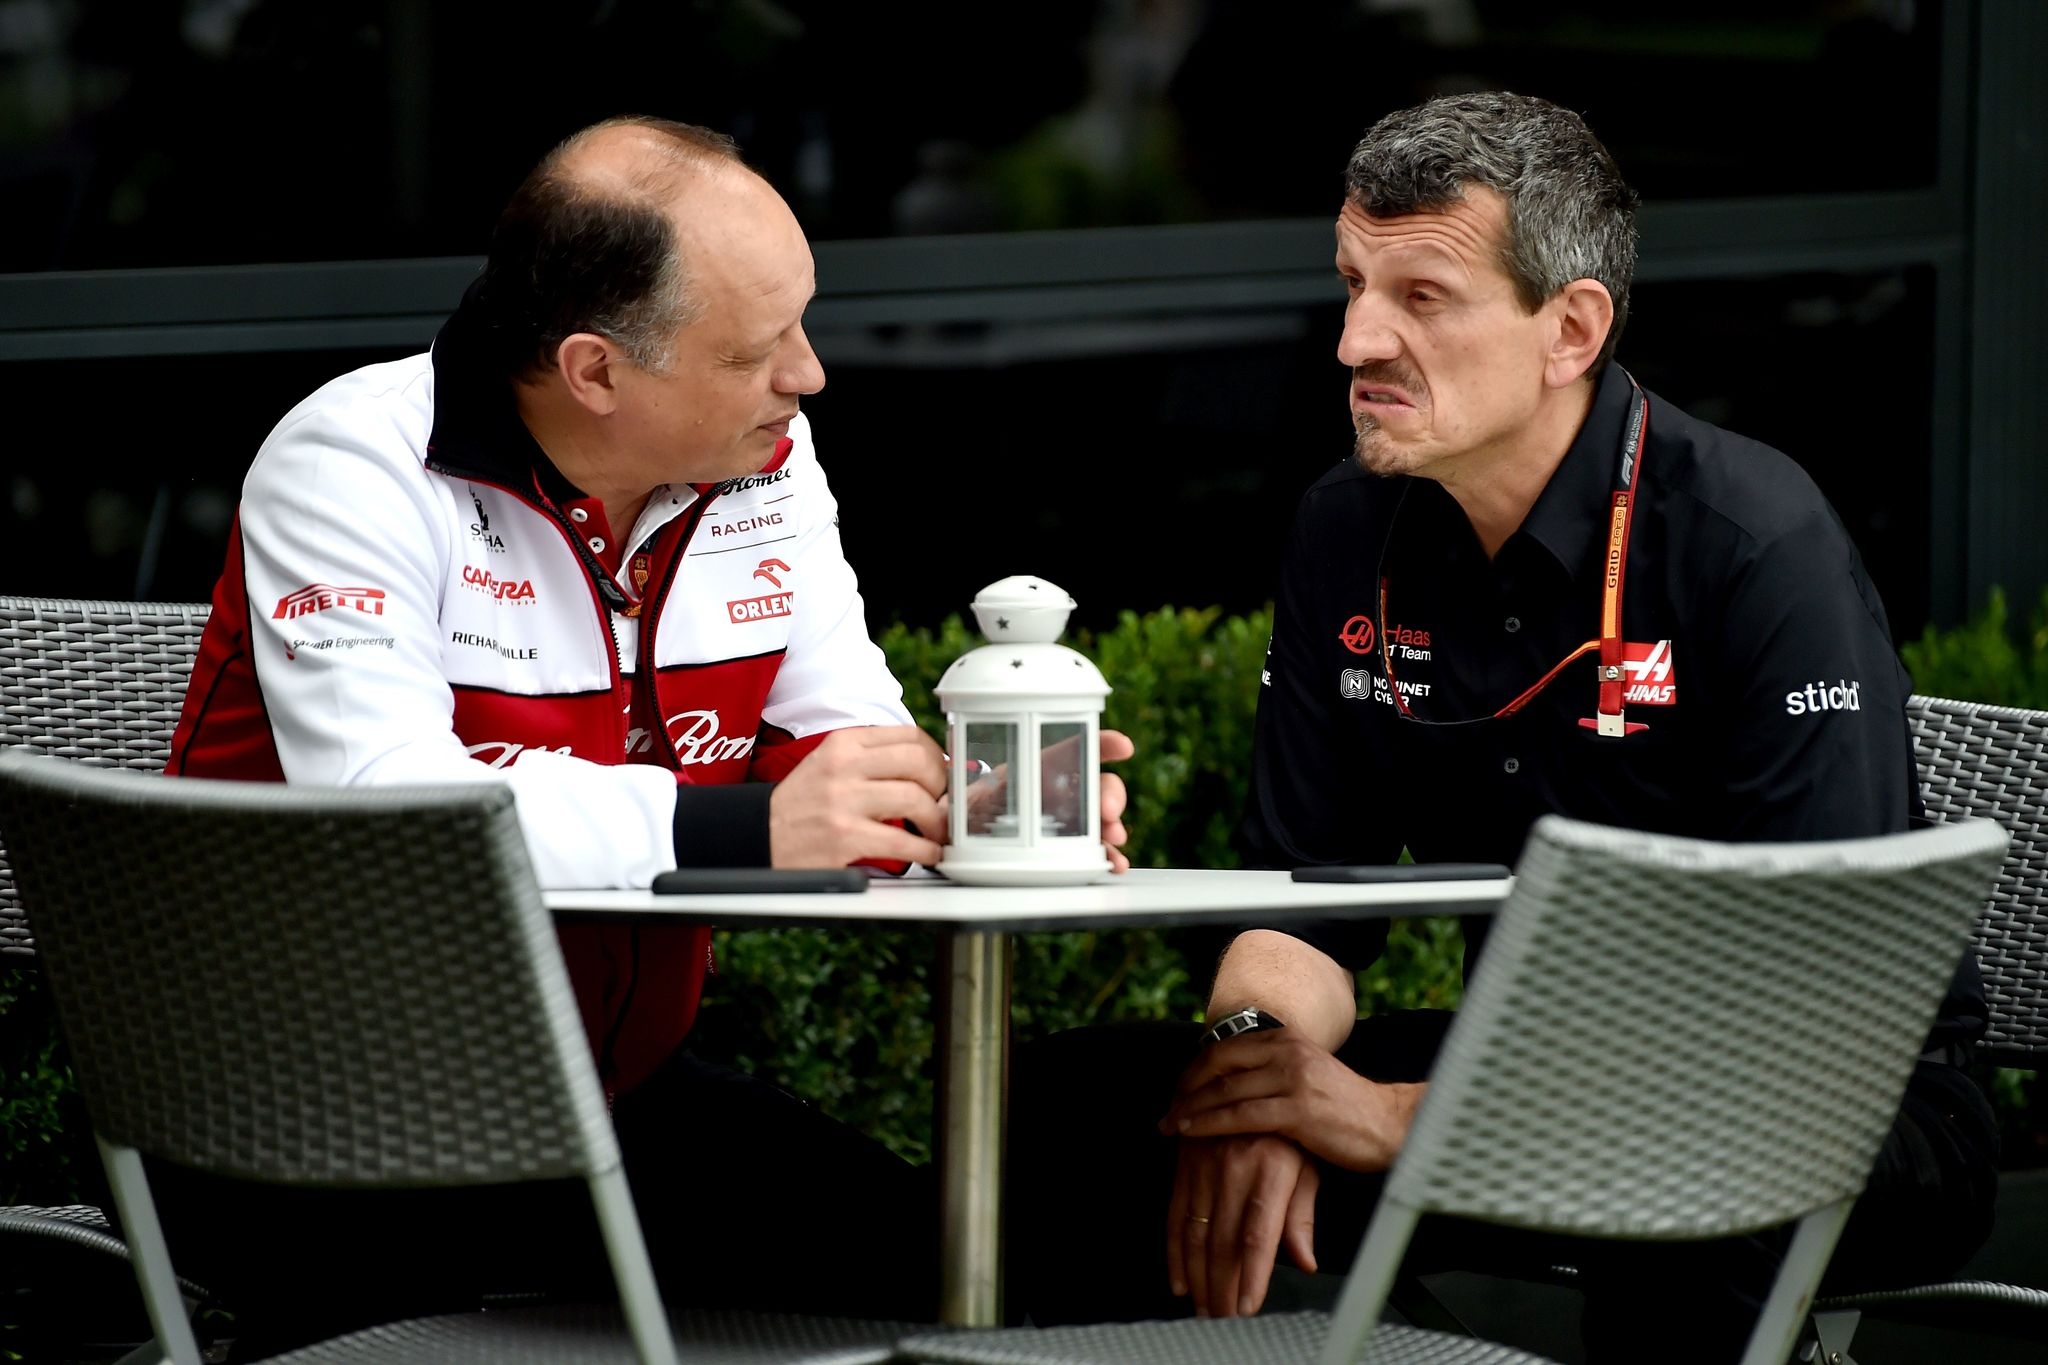 Alfa Romeo Racing Team Principal Frederic lt;HIT gt;Vasseur lt;/HIT gt; (L) and Haas F1 Team Principal Guenther Steiner talk outside the booth before the first practice session for Formula One Australian Grand Prix in Melbourne on March 13, 2020. - The season-opening Australian Grand Prix was cancelled just hours before the action was due to start over fears about the spread of coronavirus after a McLaren team member tested positive. (Photo by Peter PARKS / AFP) / -- IMAGE RESTRICTED TO EDITORIAL USE - STRICTLY NO COMMERCIAL USE --